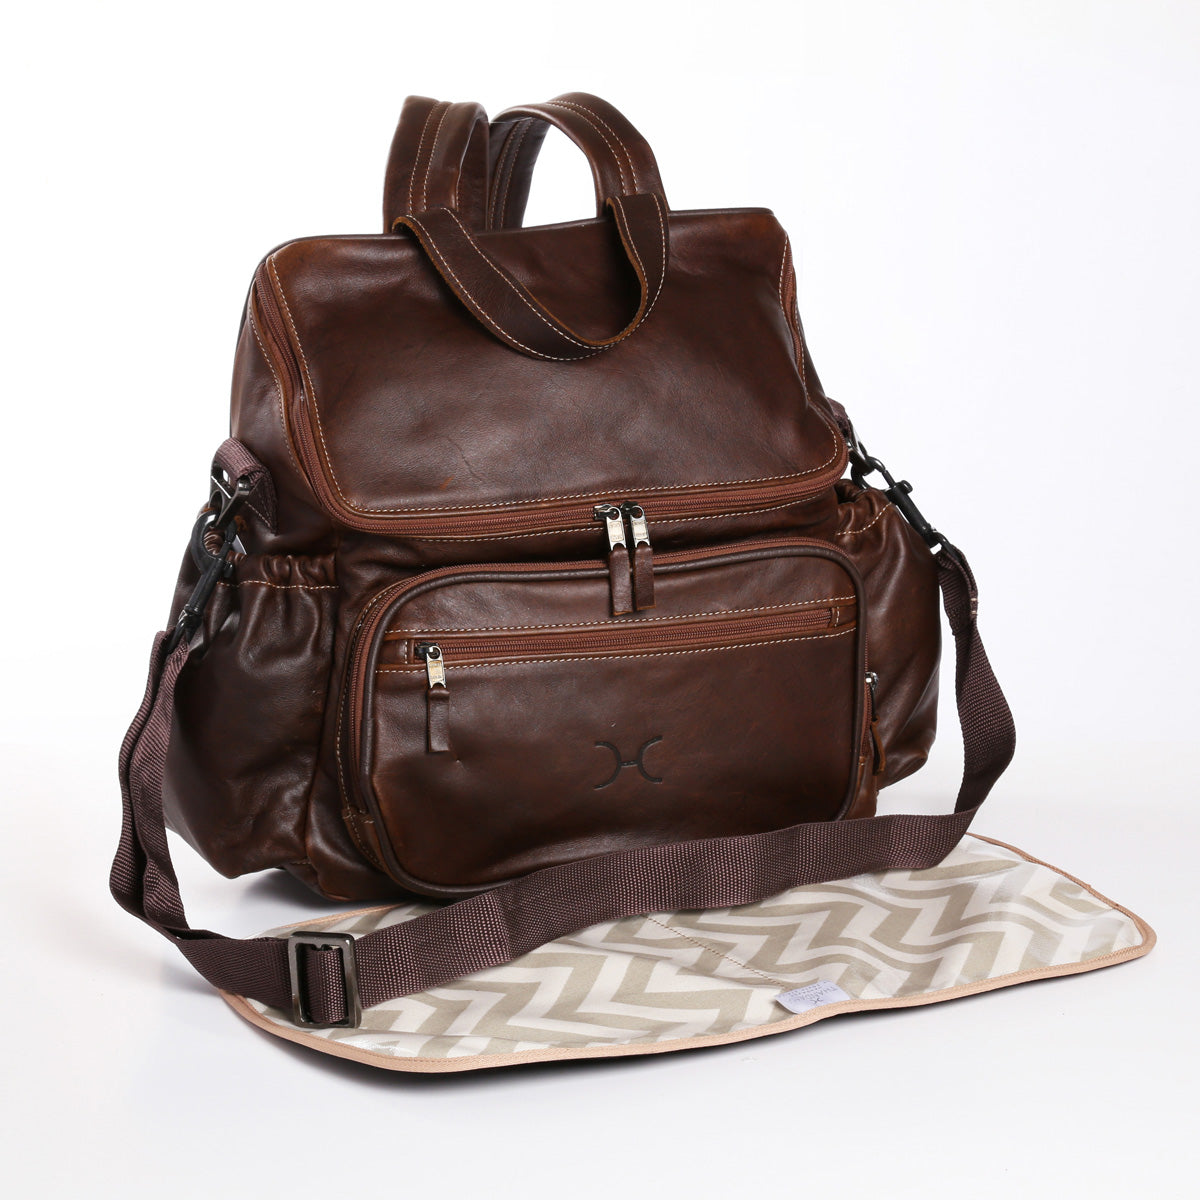 Thandana Nappy Backpack - Brown - Zufrique Boutique